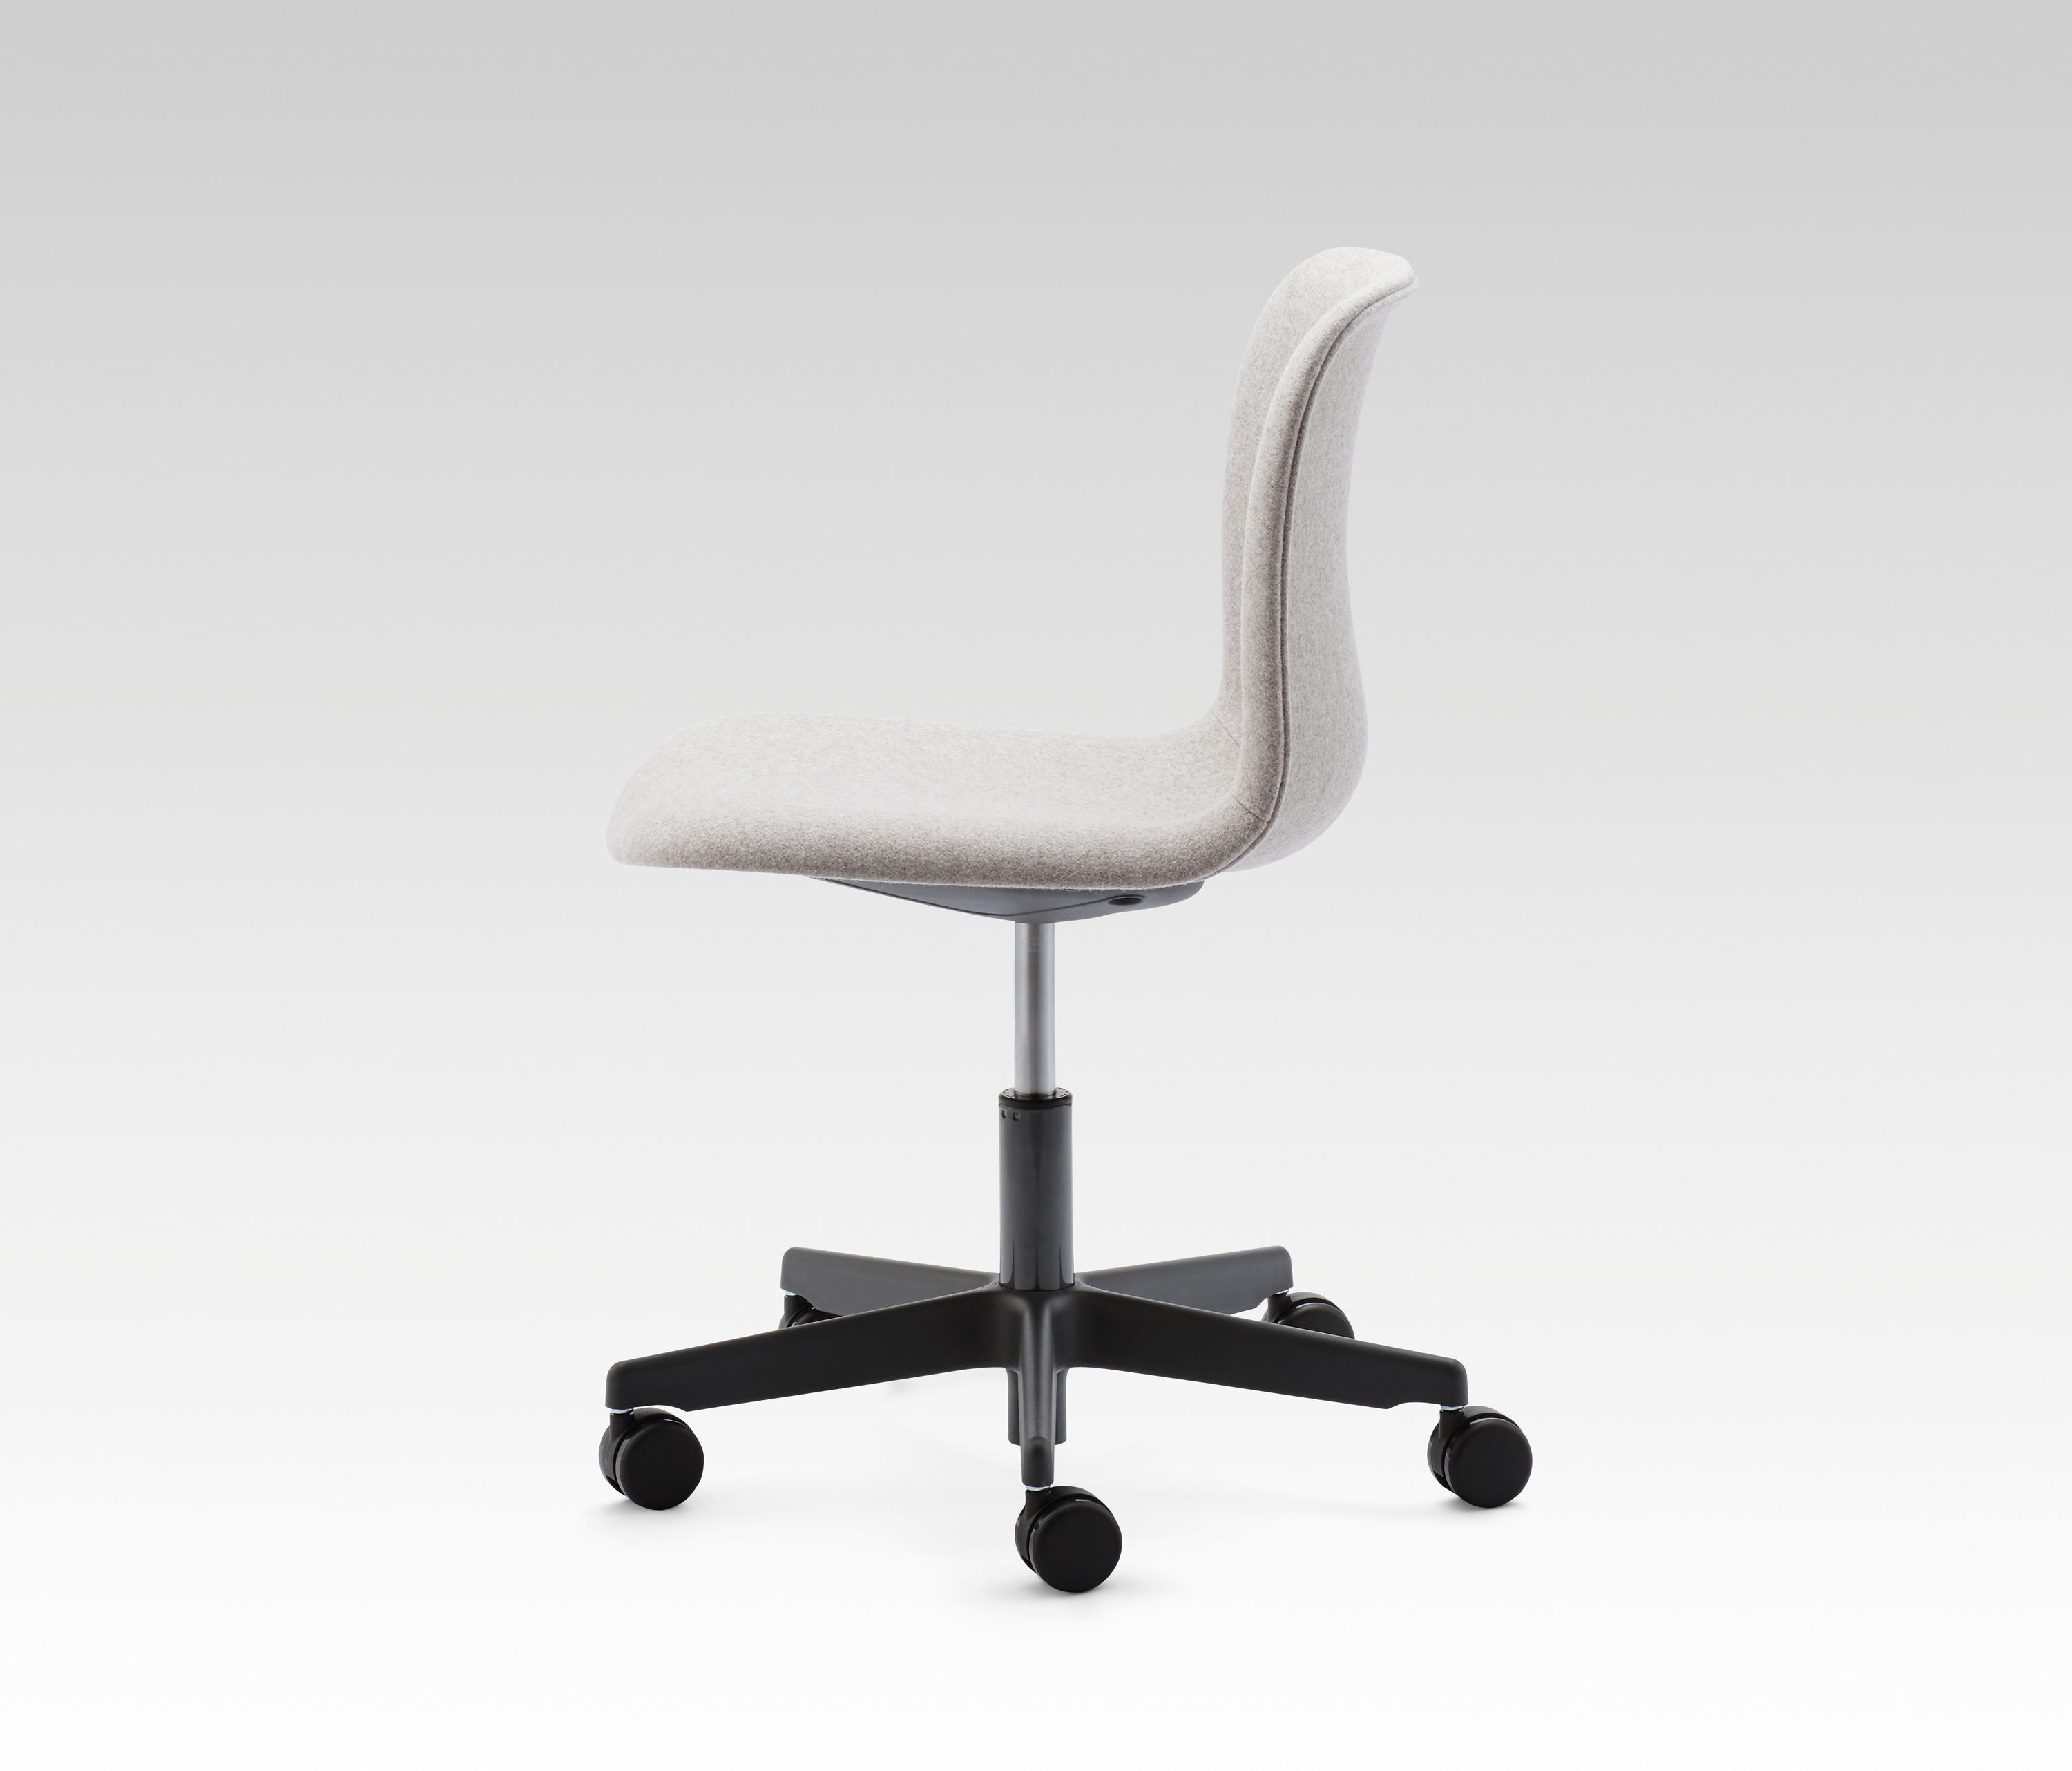 sixe swivel office chairs from howe architonic